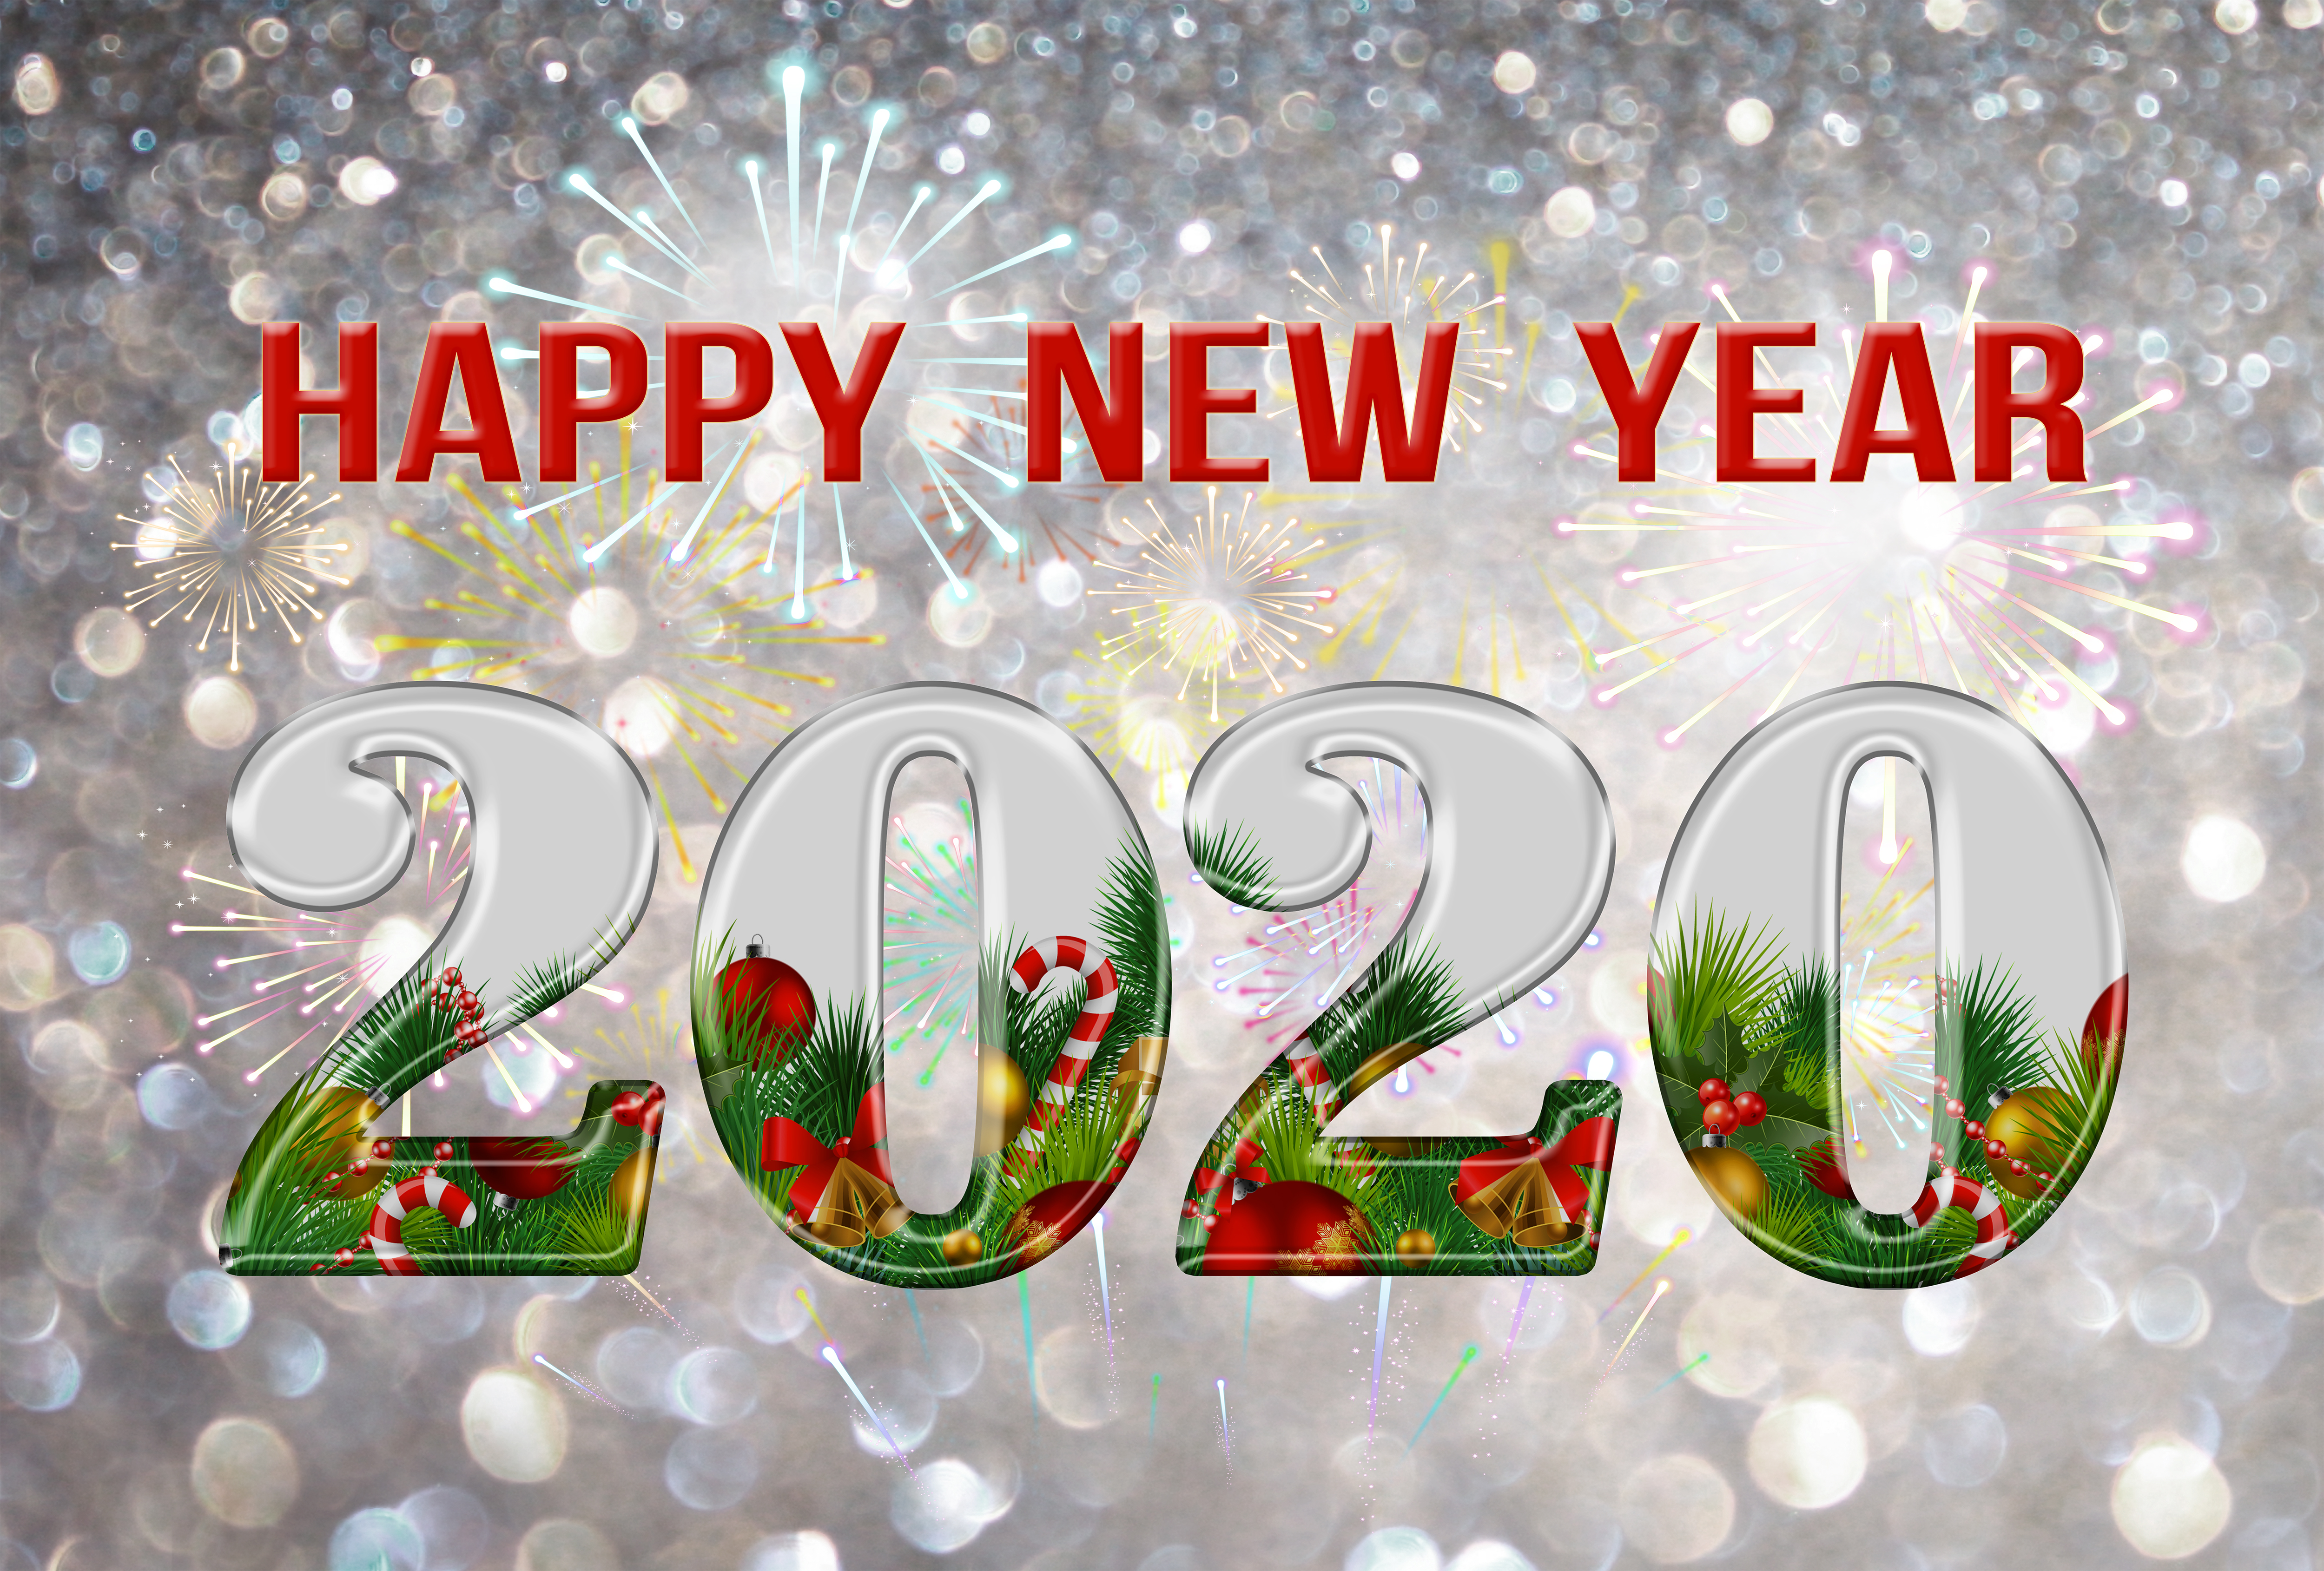 New Year 2020 4k Ultra HD Wallpaper | Background Image ...